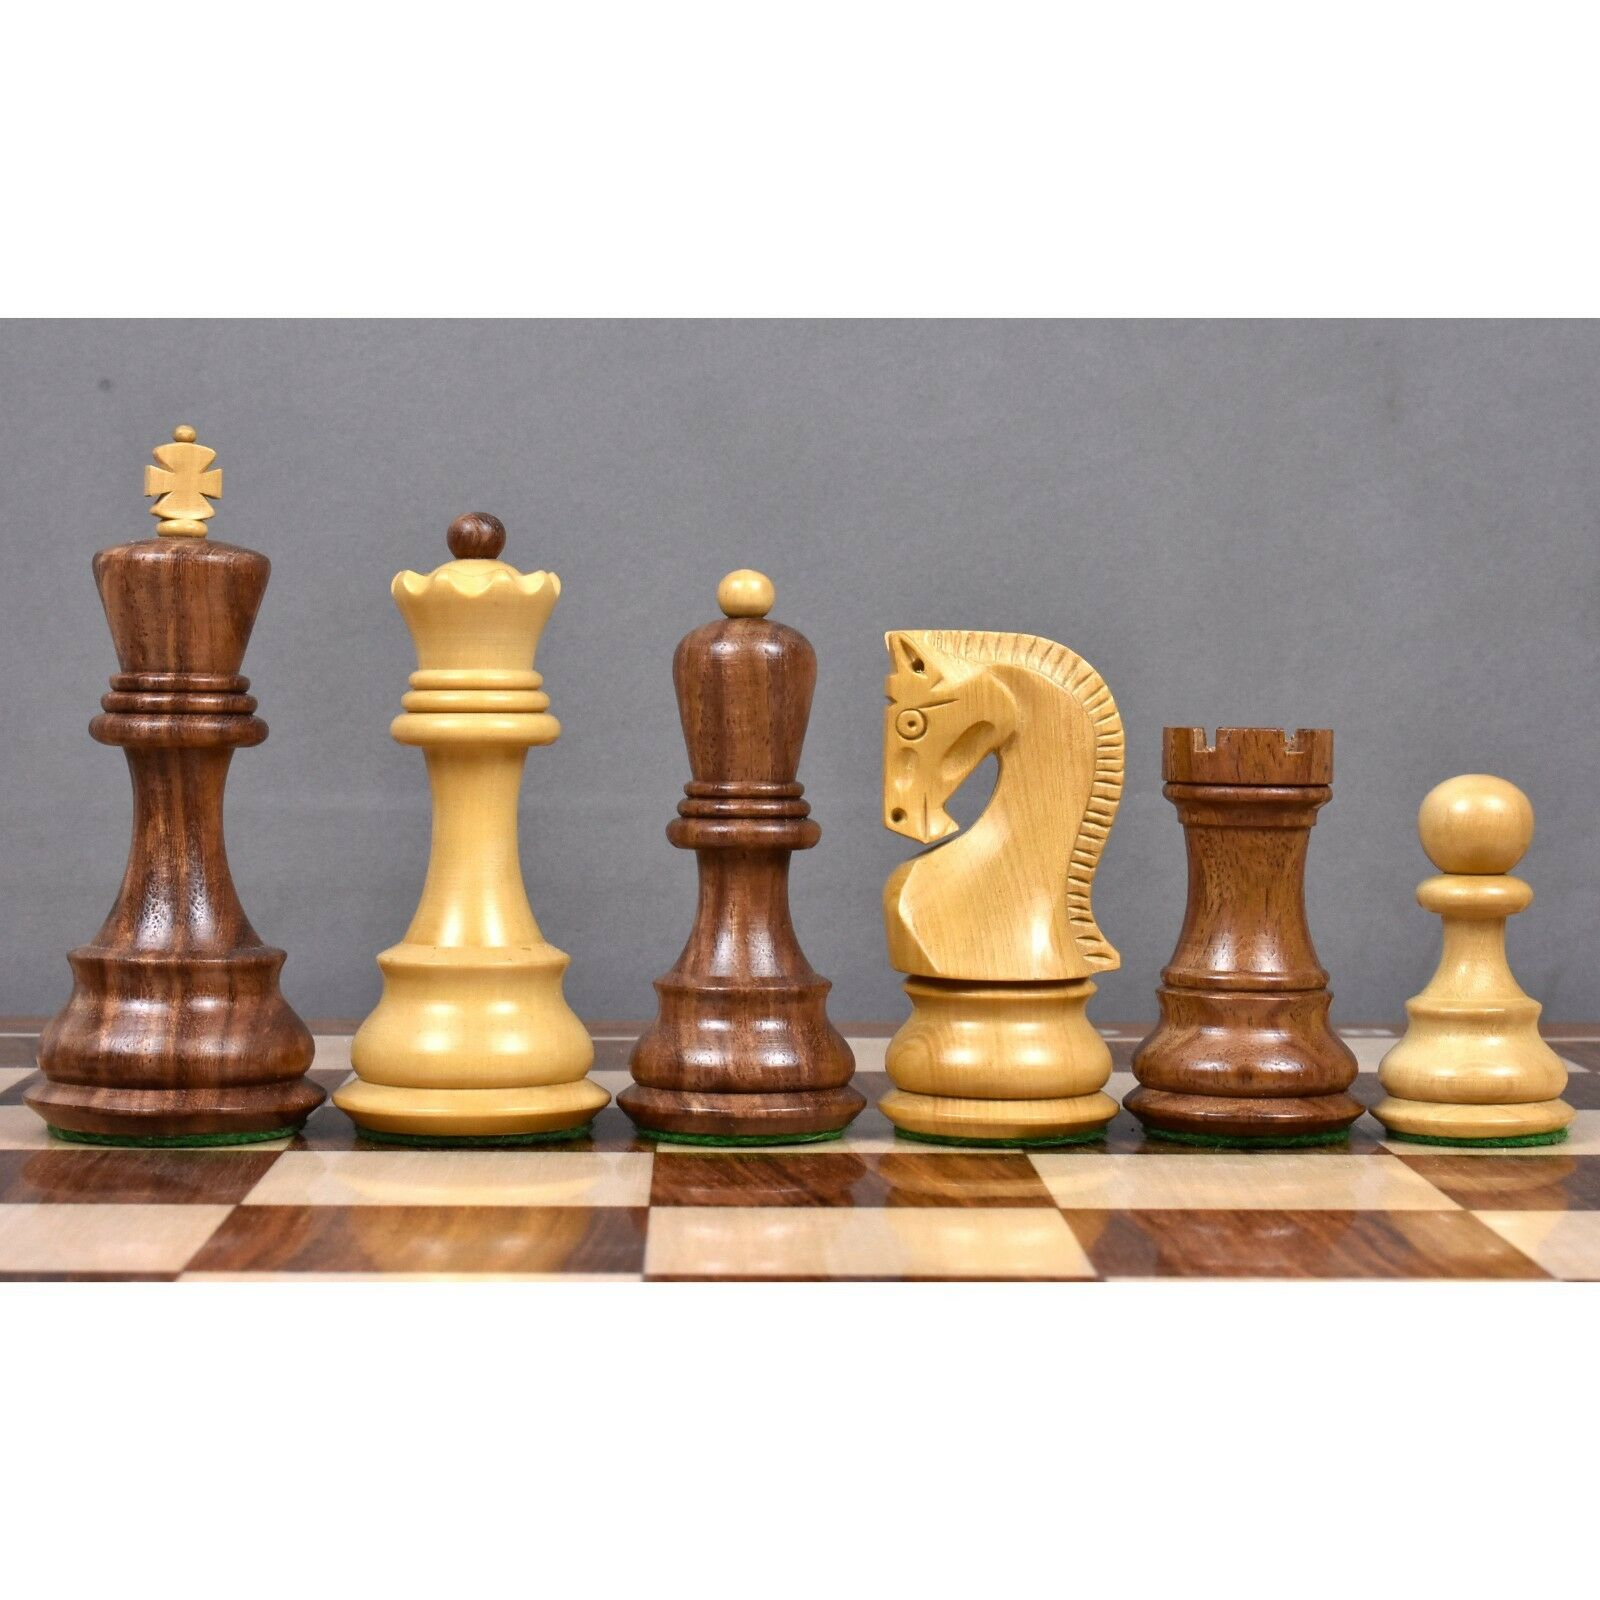 Gold Chess Pieces 3 9 Russian Zabreg Chess Set Weighted Golden Pink Wood Extra